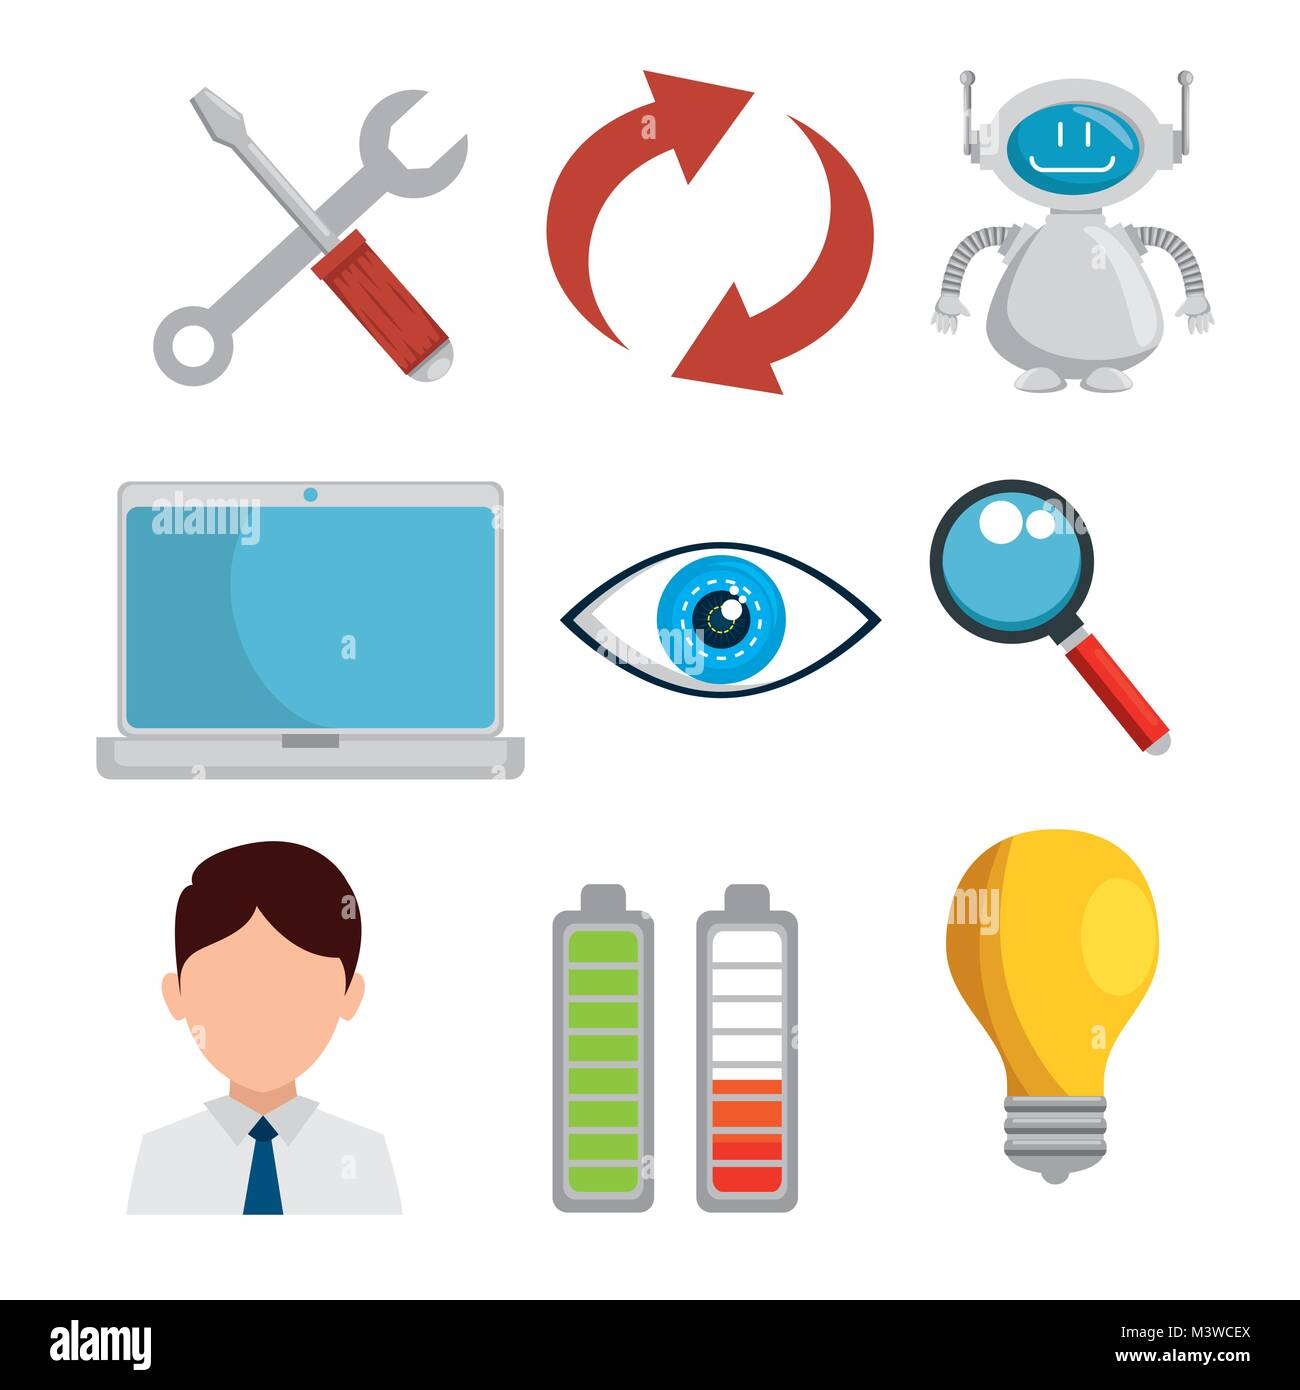 artificial inteligence technology set icons - Stock Image